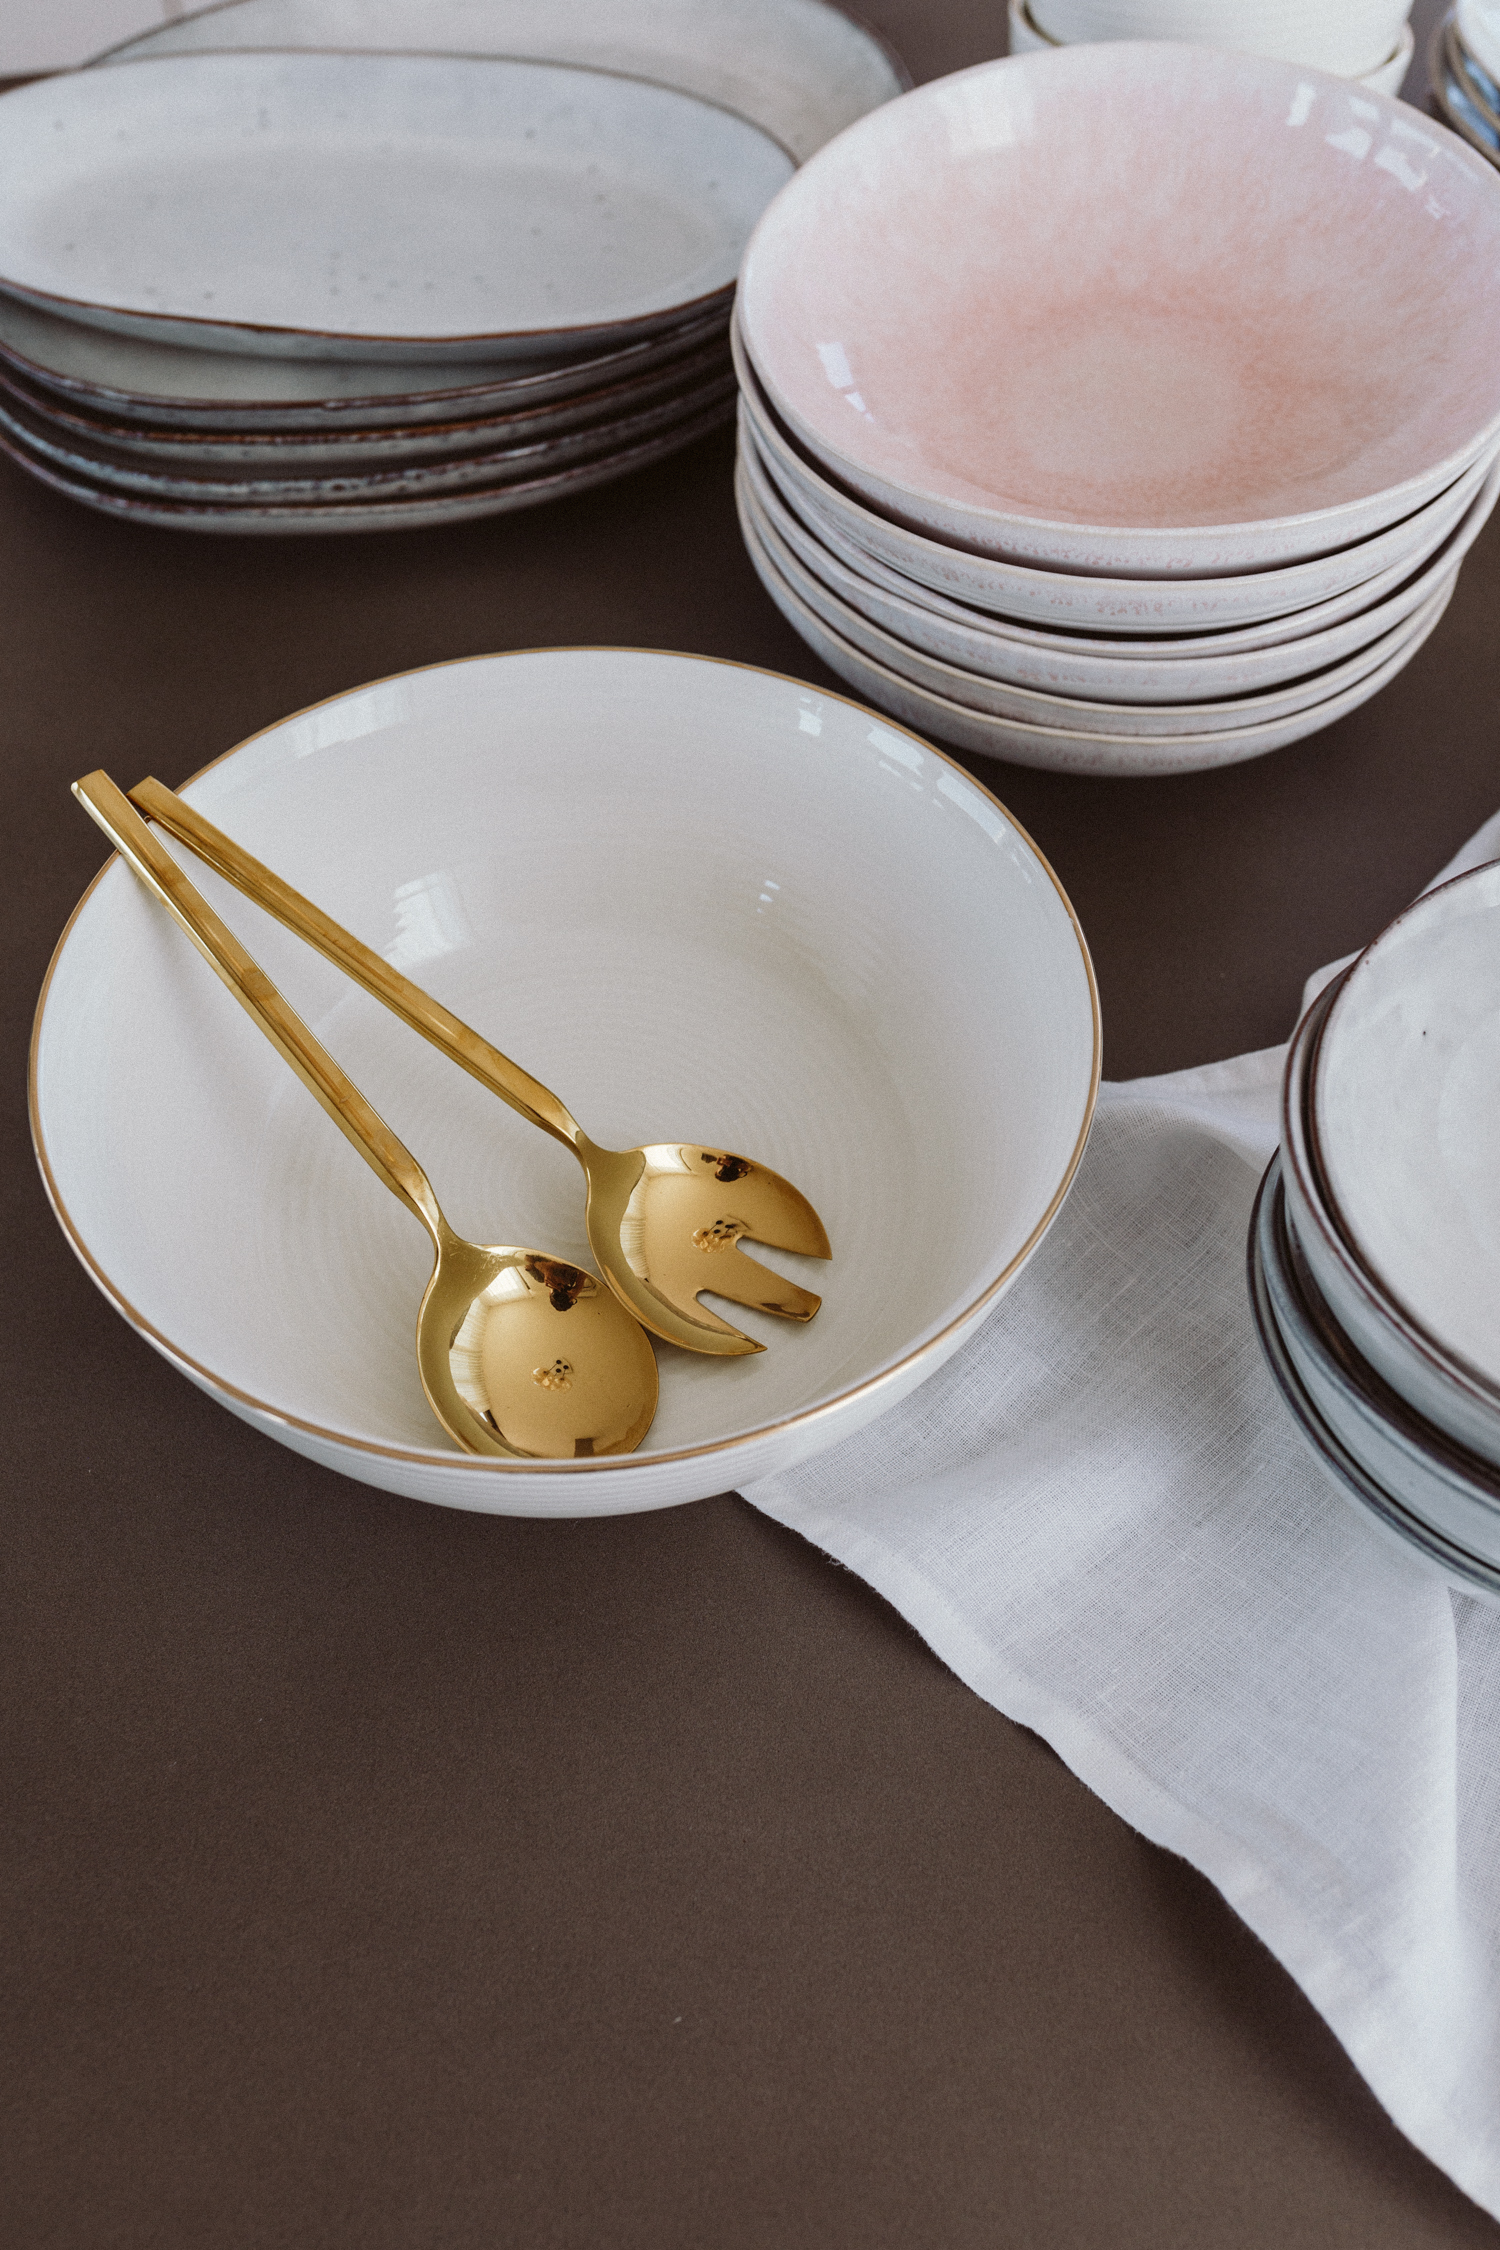 Our Tableware: The best handmade ceramics brands - Bikinis & Passports